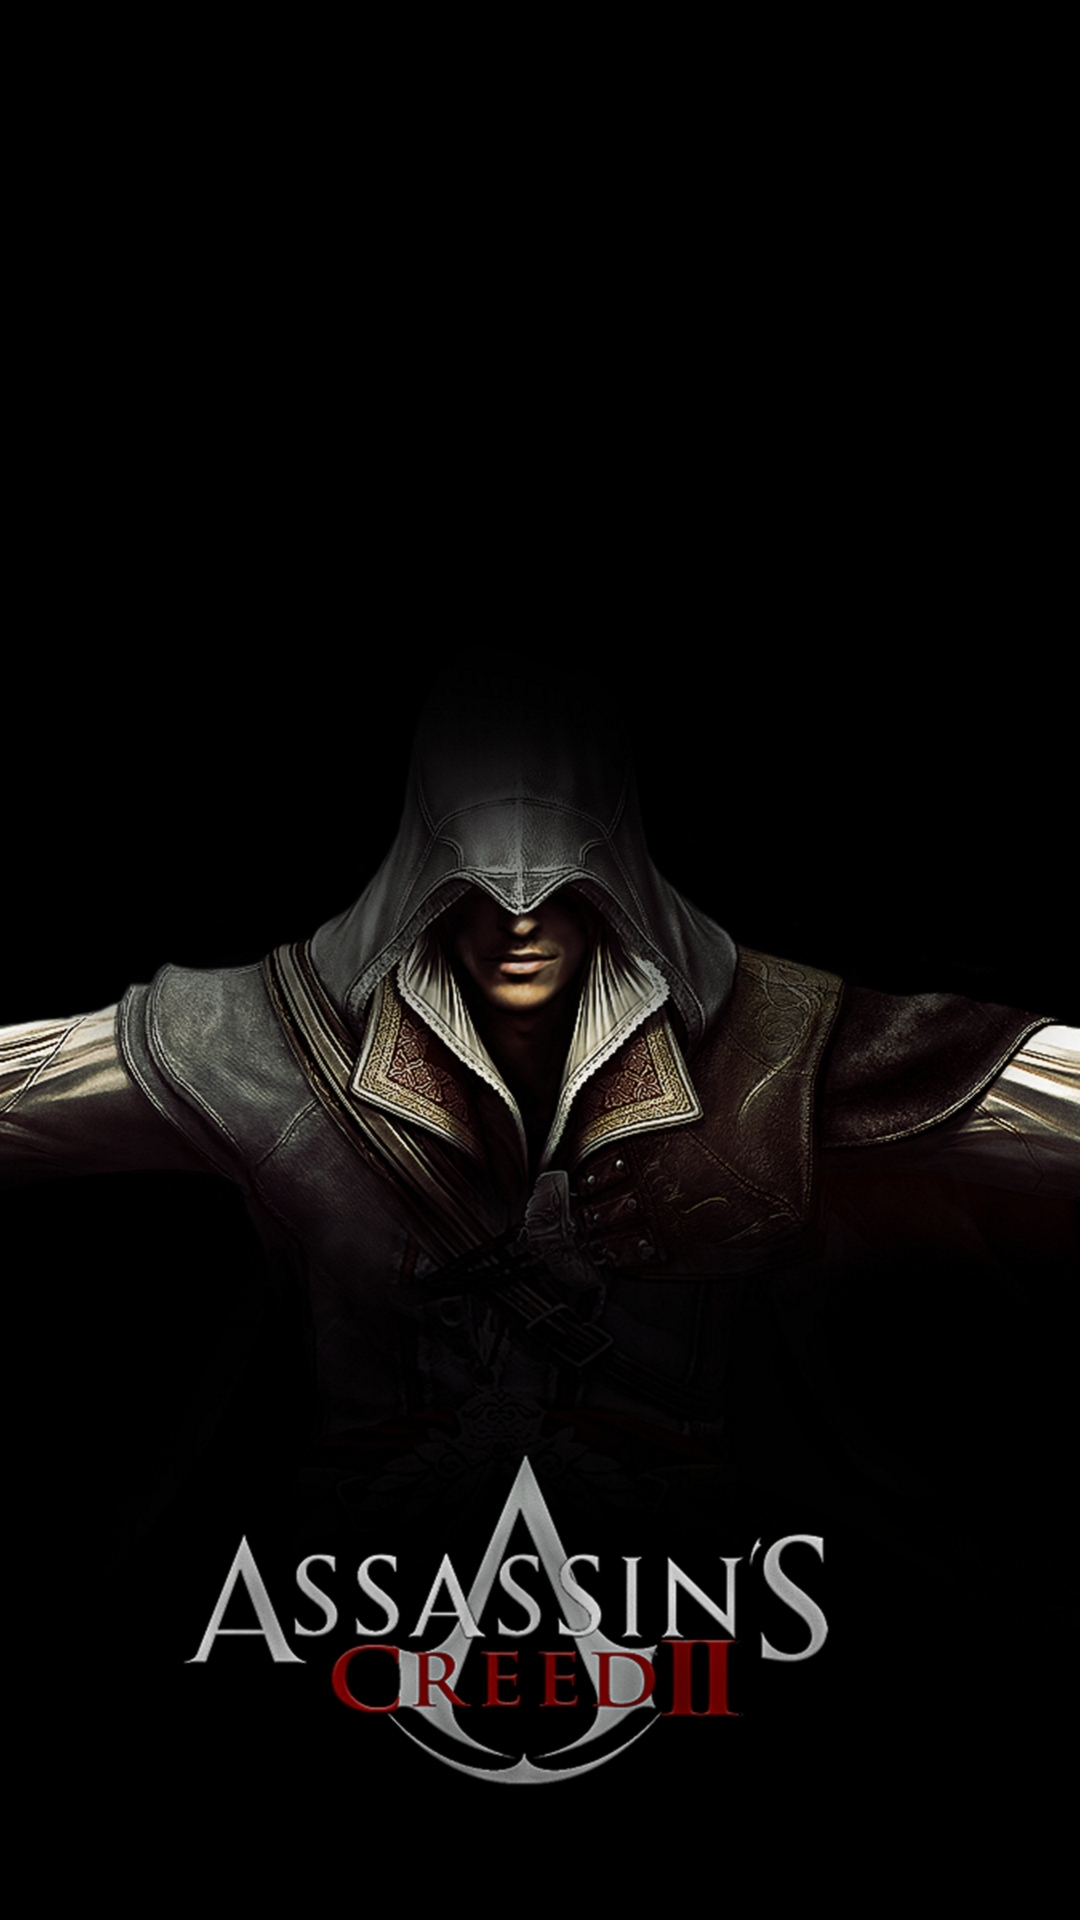 Assassin's Creed Wallpaper Full HD for Iphone.